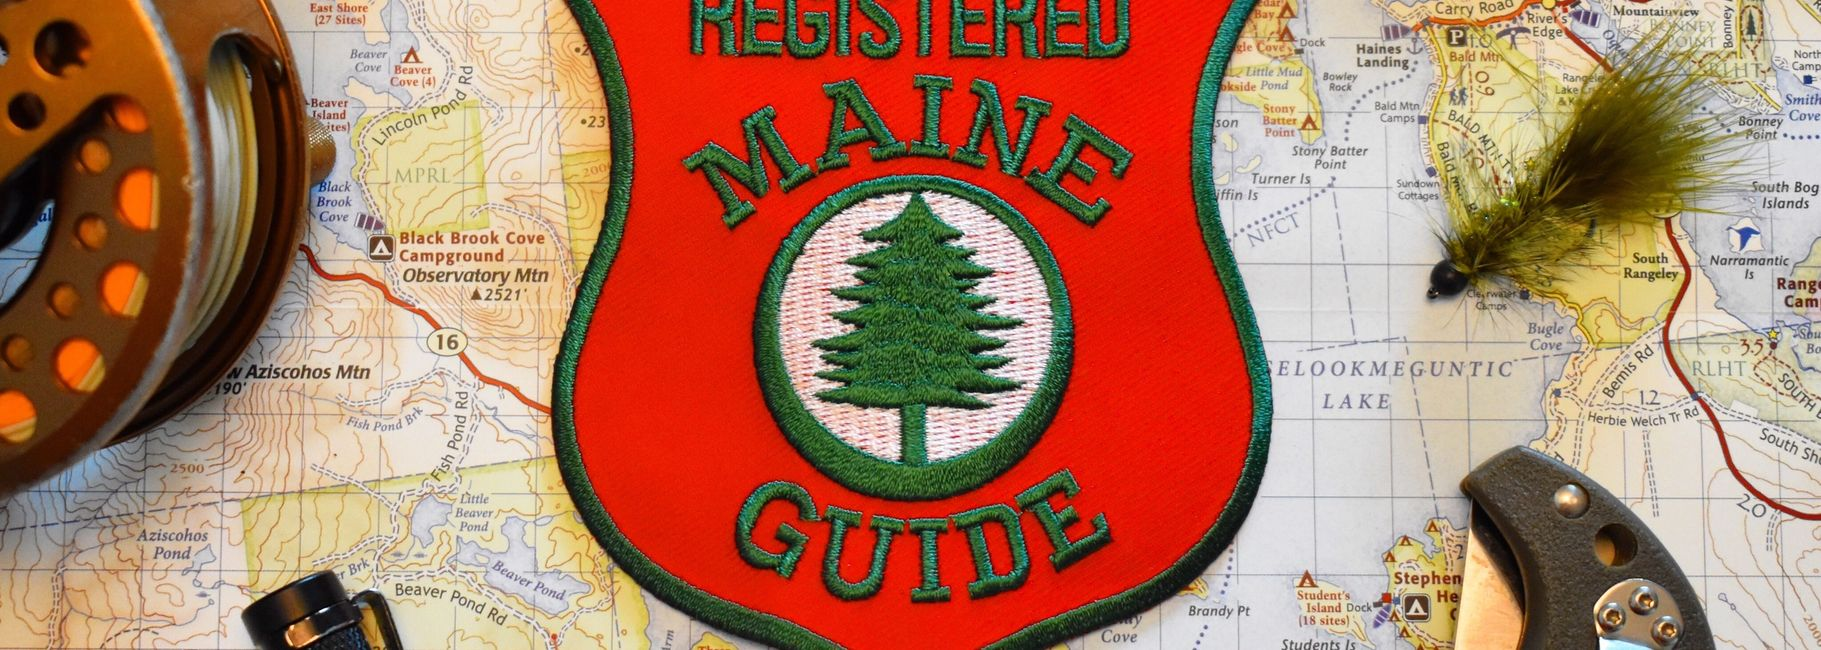 Becoming a Registered Maine Guide becoming-a-registered-maine-guide.jpg